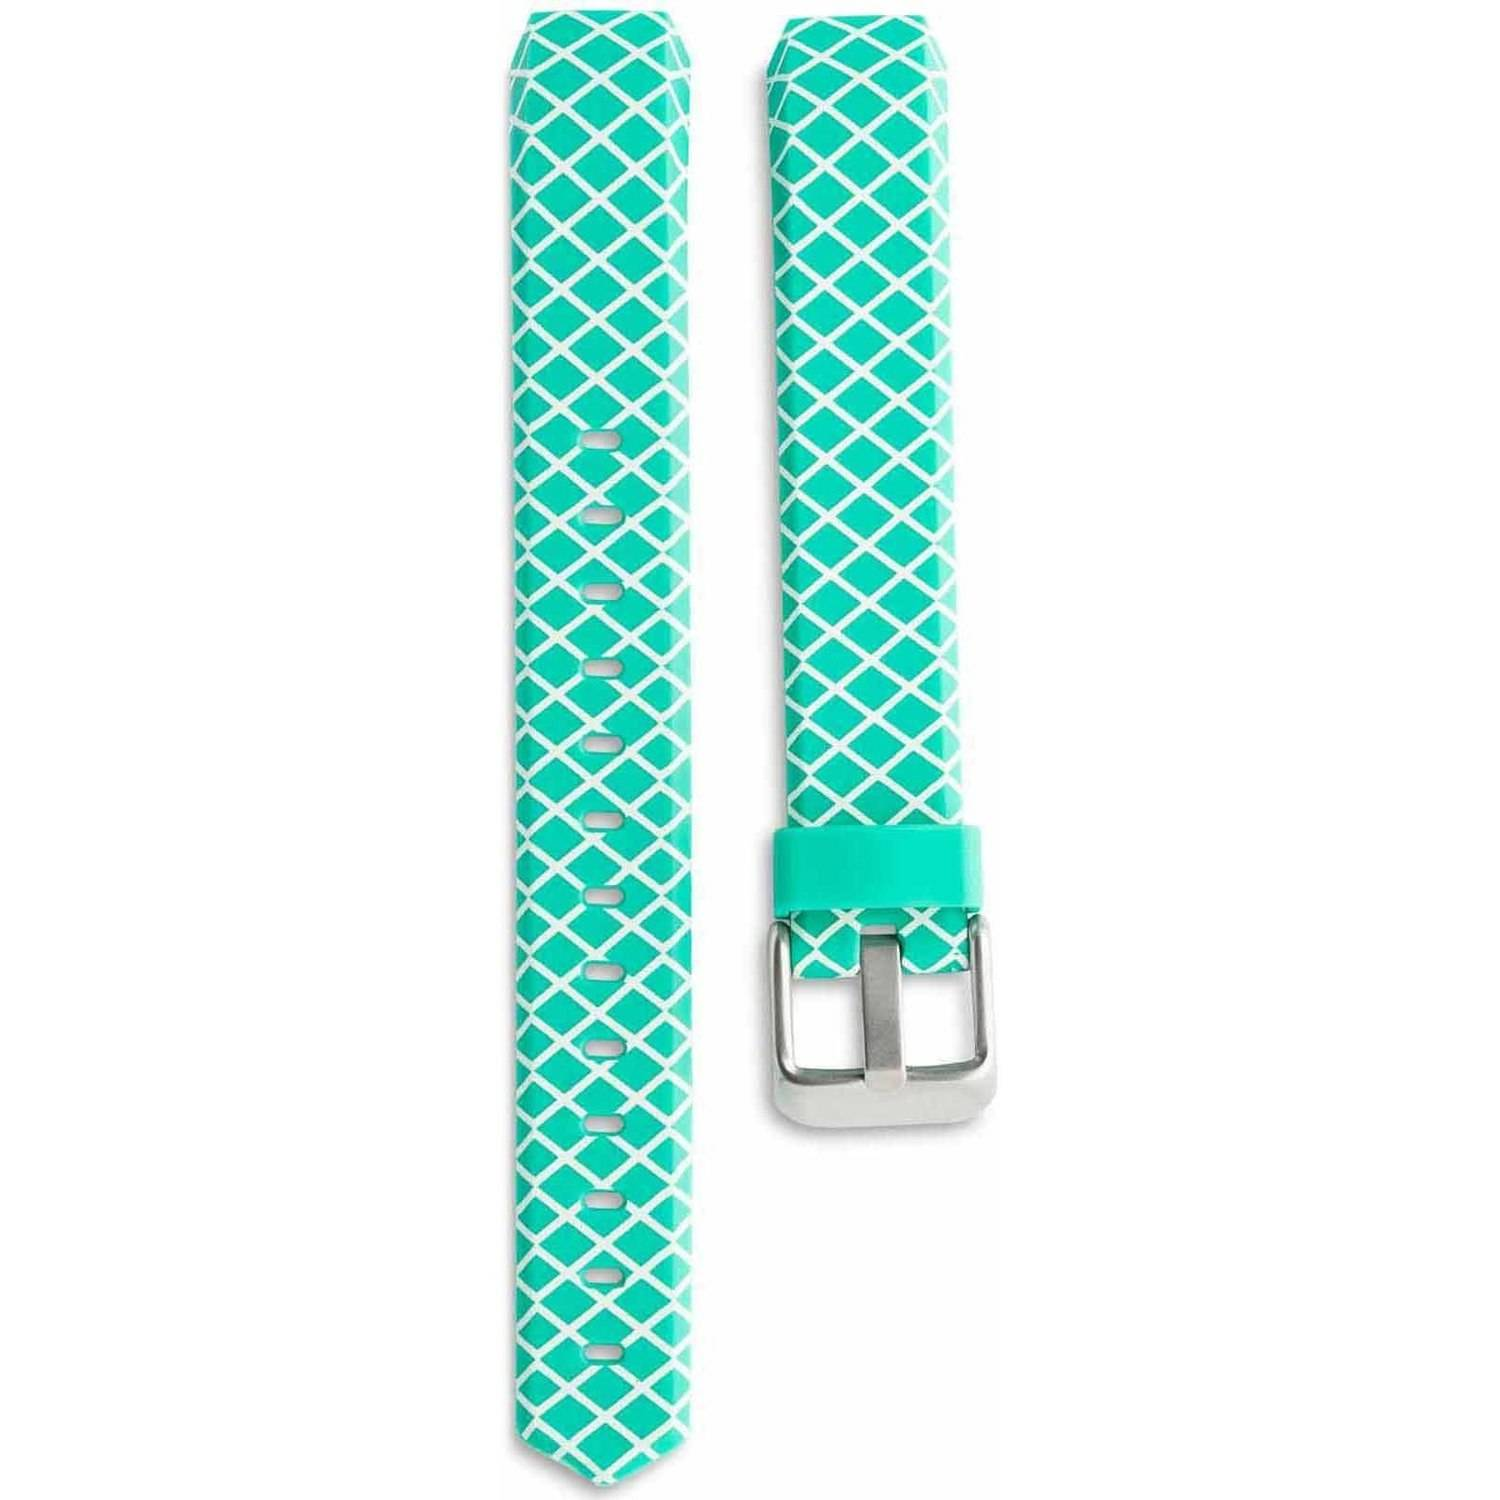 ONN* Adjustable FITBIT ALTA Metal Buckle REPLACEMENT BAND TEAL NEW